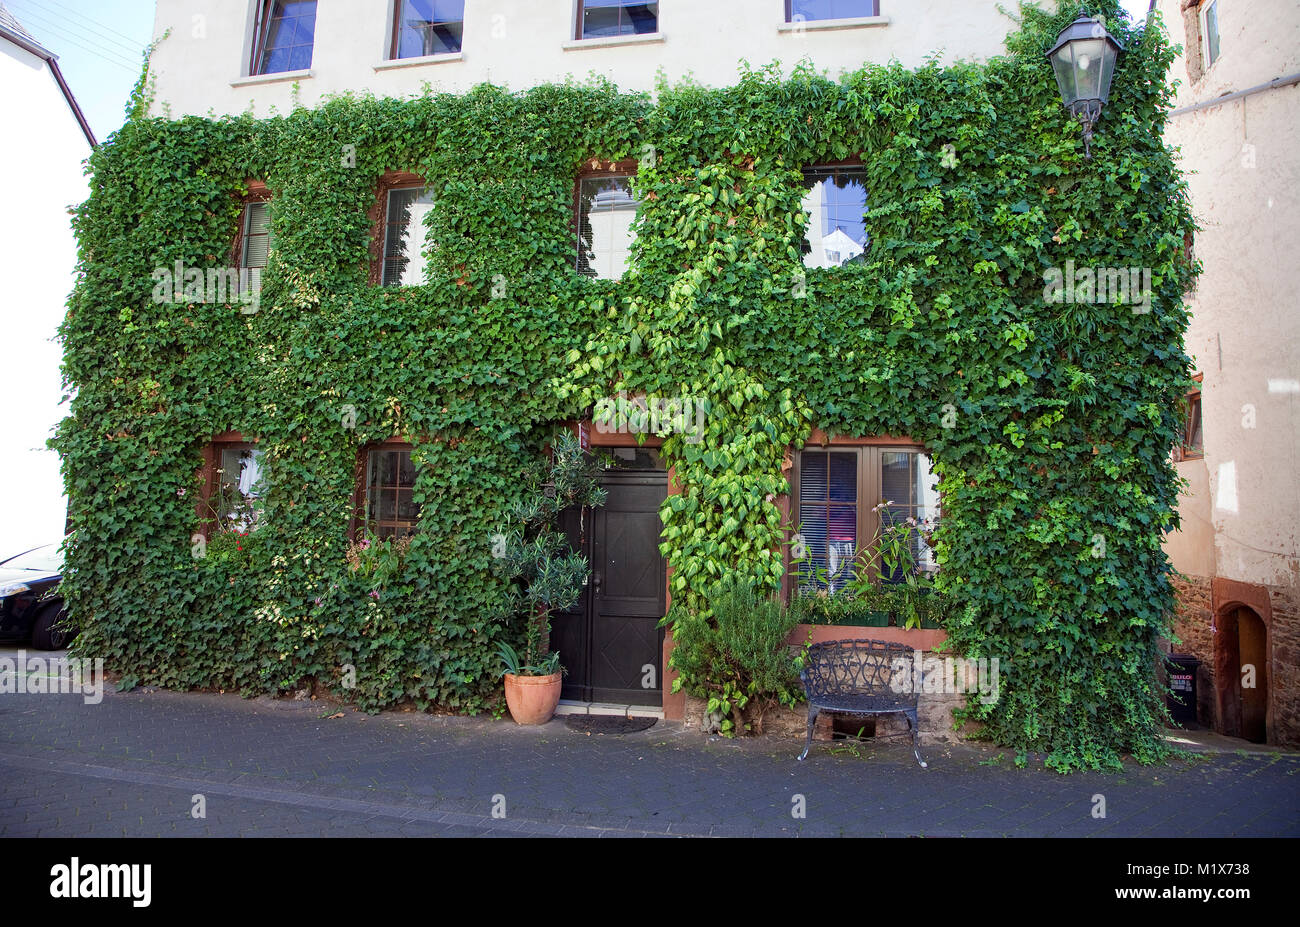 Entrance to herb garden shop, house facade with twiners, Uerzig, Moselle river, Rhineland-Palatinate, Germany, Europe Stock Photo